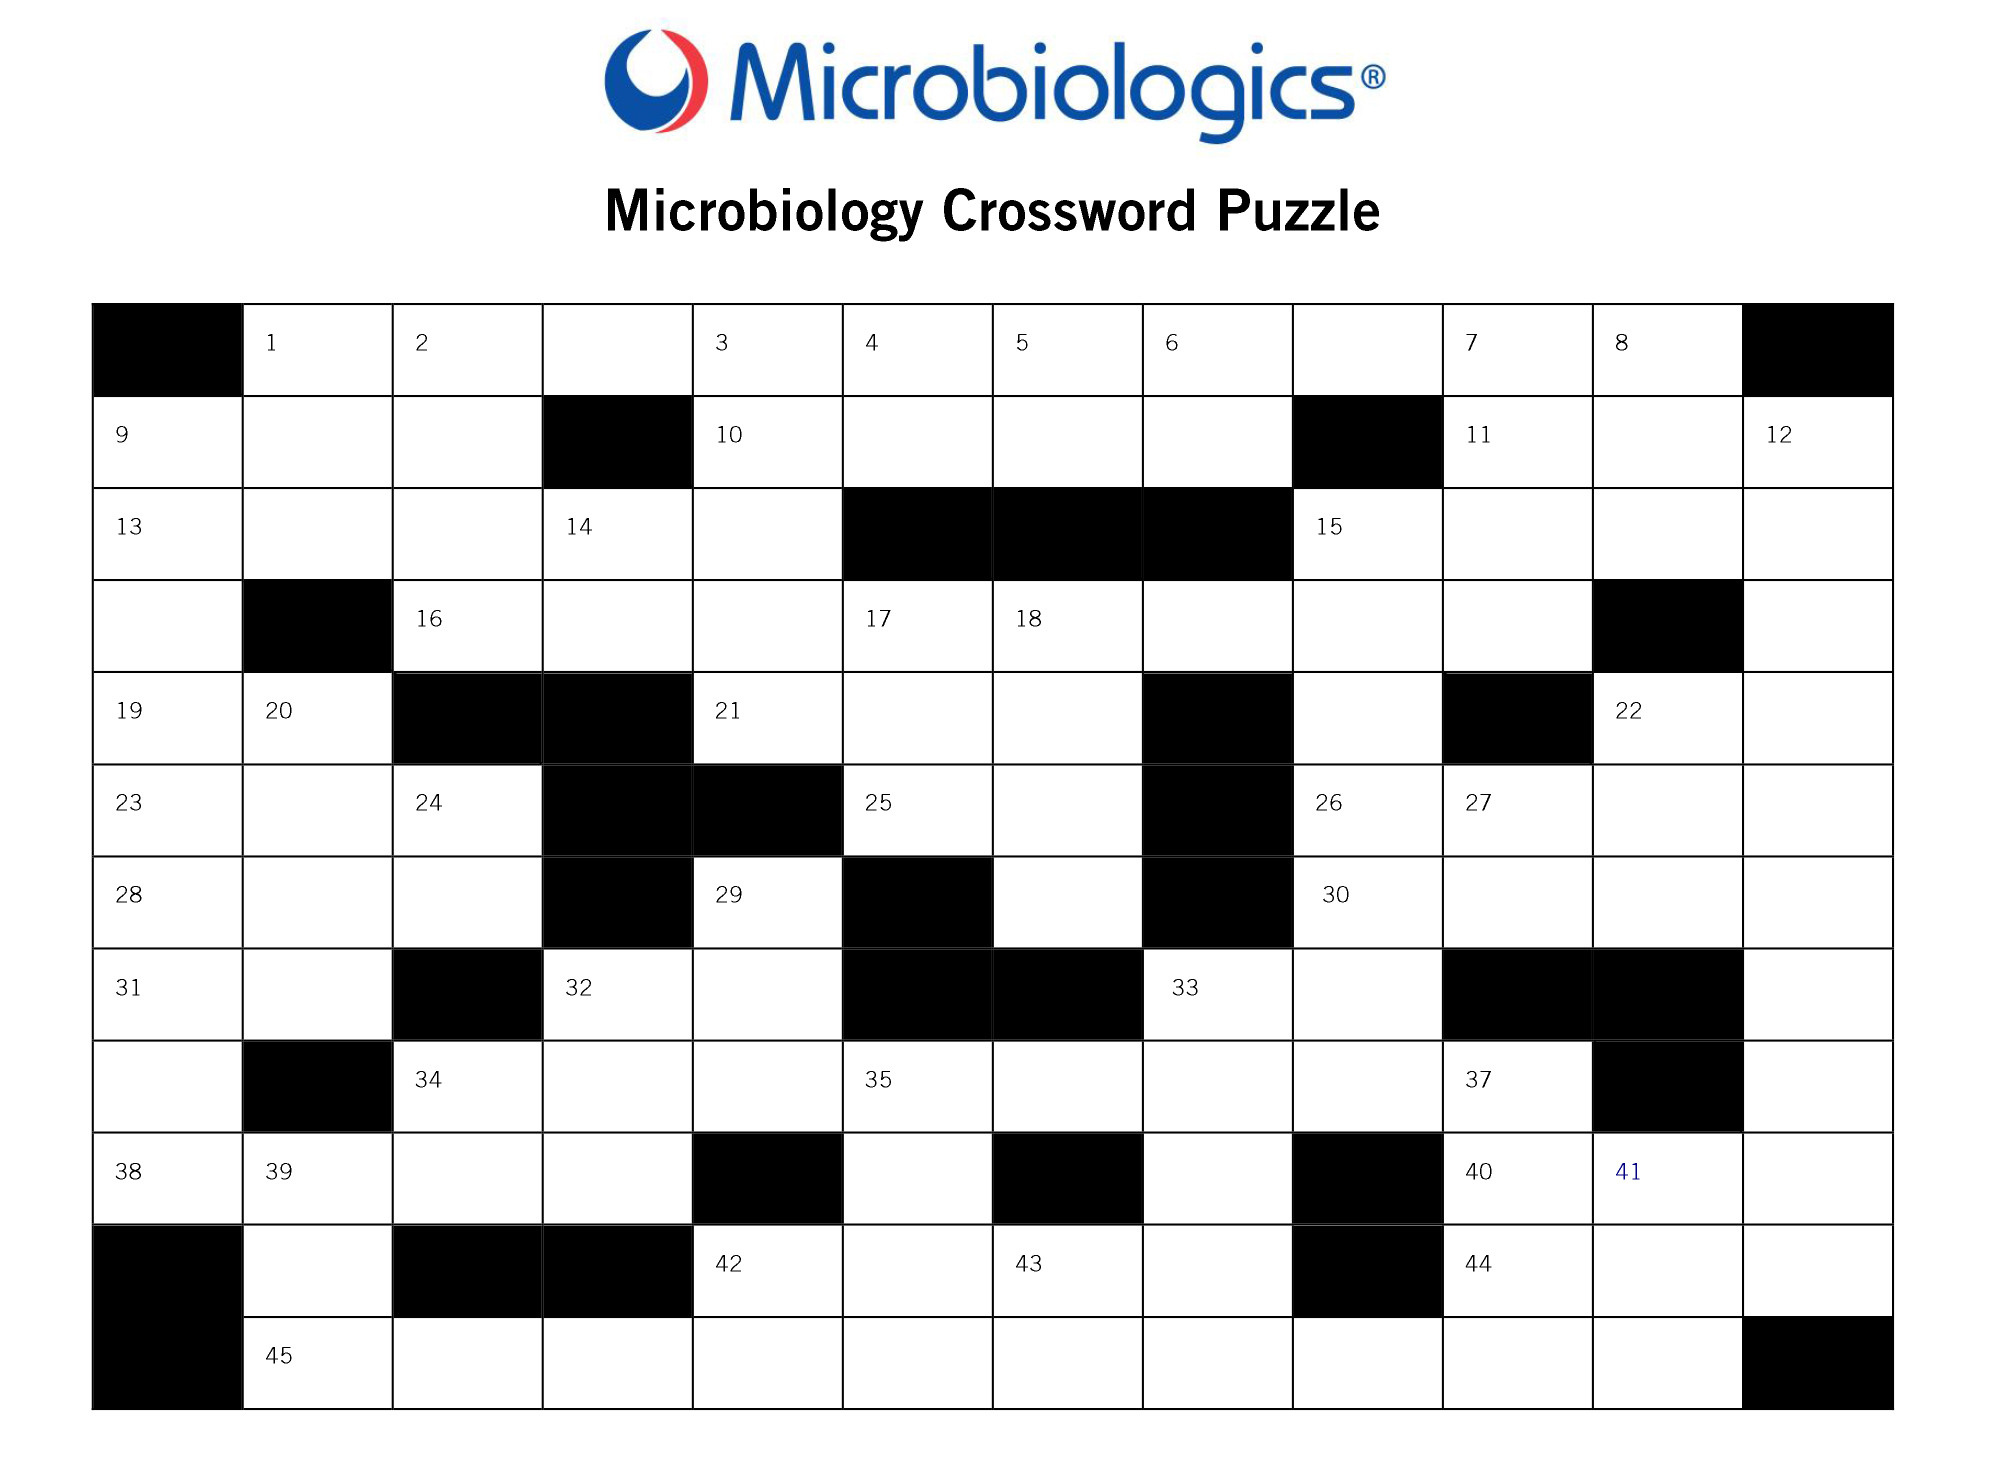 Microbiology Crossword Puzzle Image